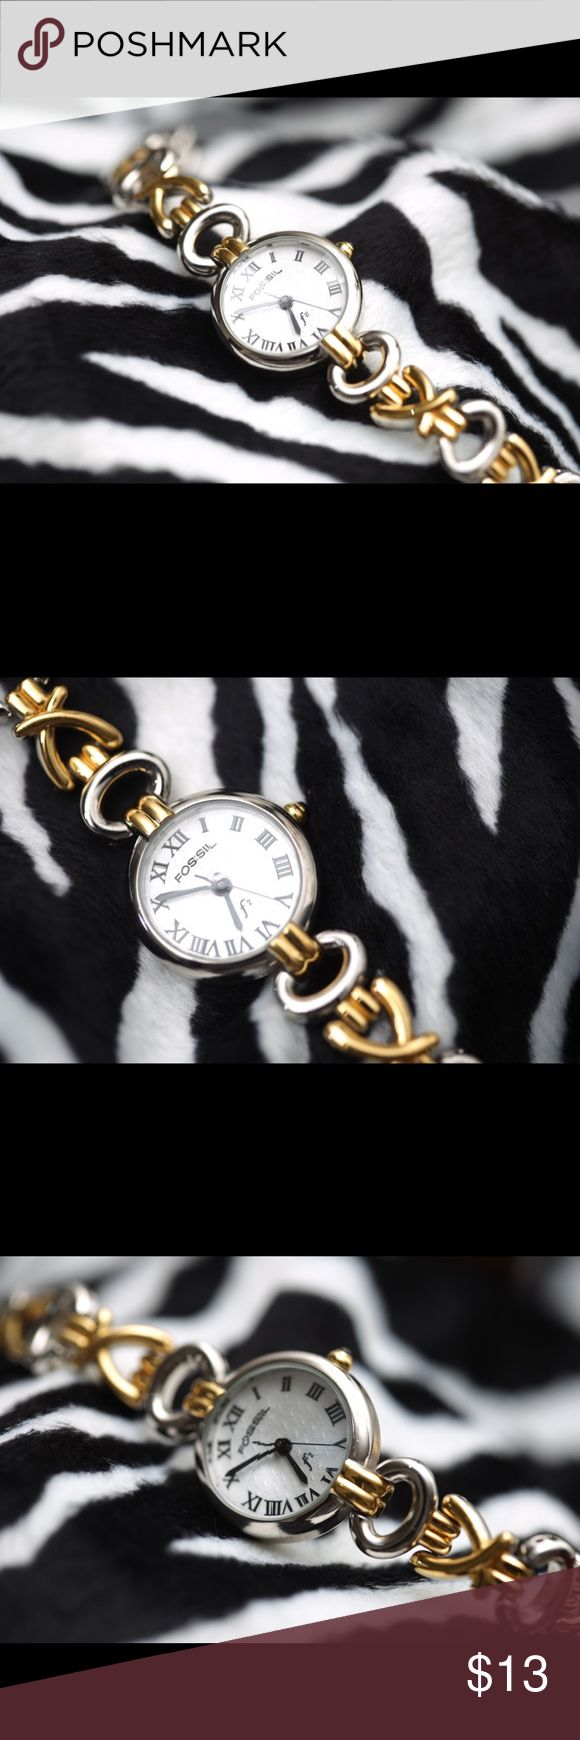 Fossil watch This is a gently used wrist watch for ladies. It has silver tone and gold tone hardware. Note this is not real silver or gold. Fossil Accessories Watches